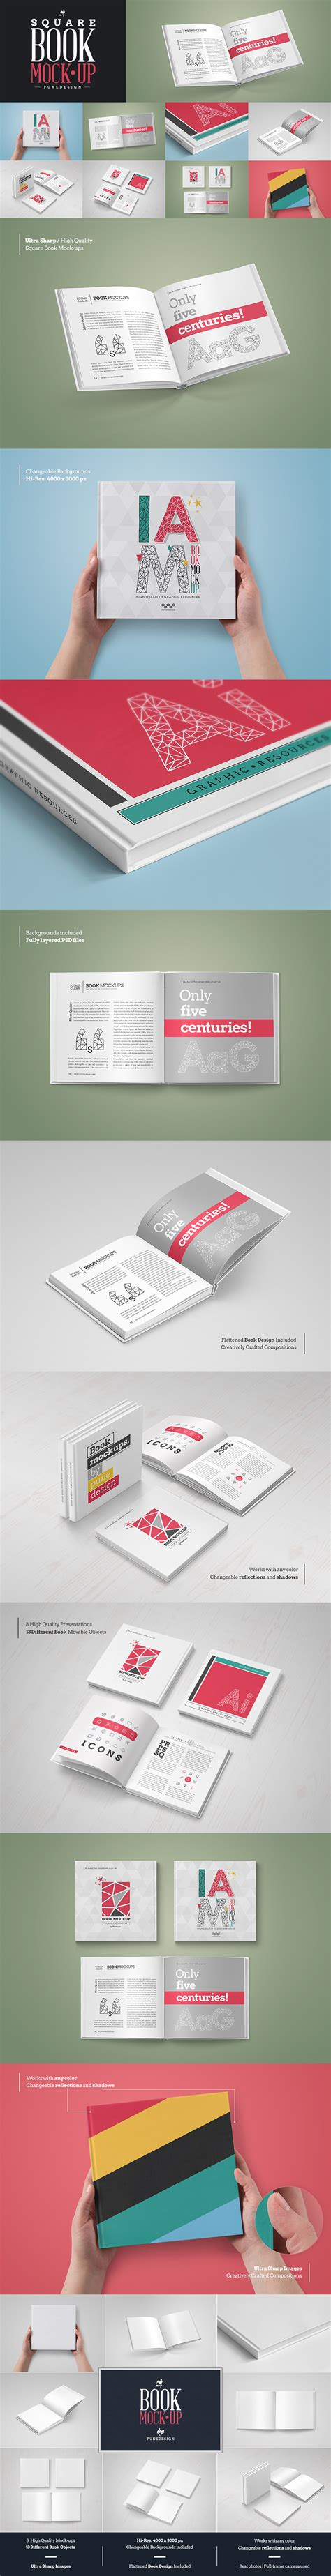 design mockup bundle the gigantic mockup templates bundle with 18 incredible